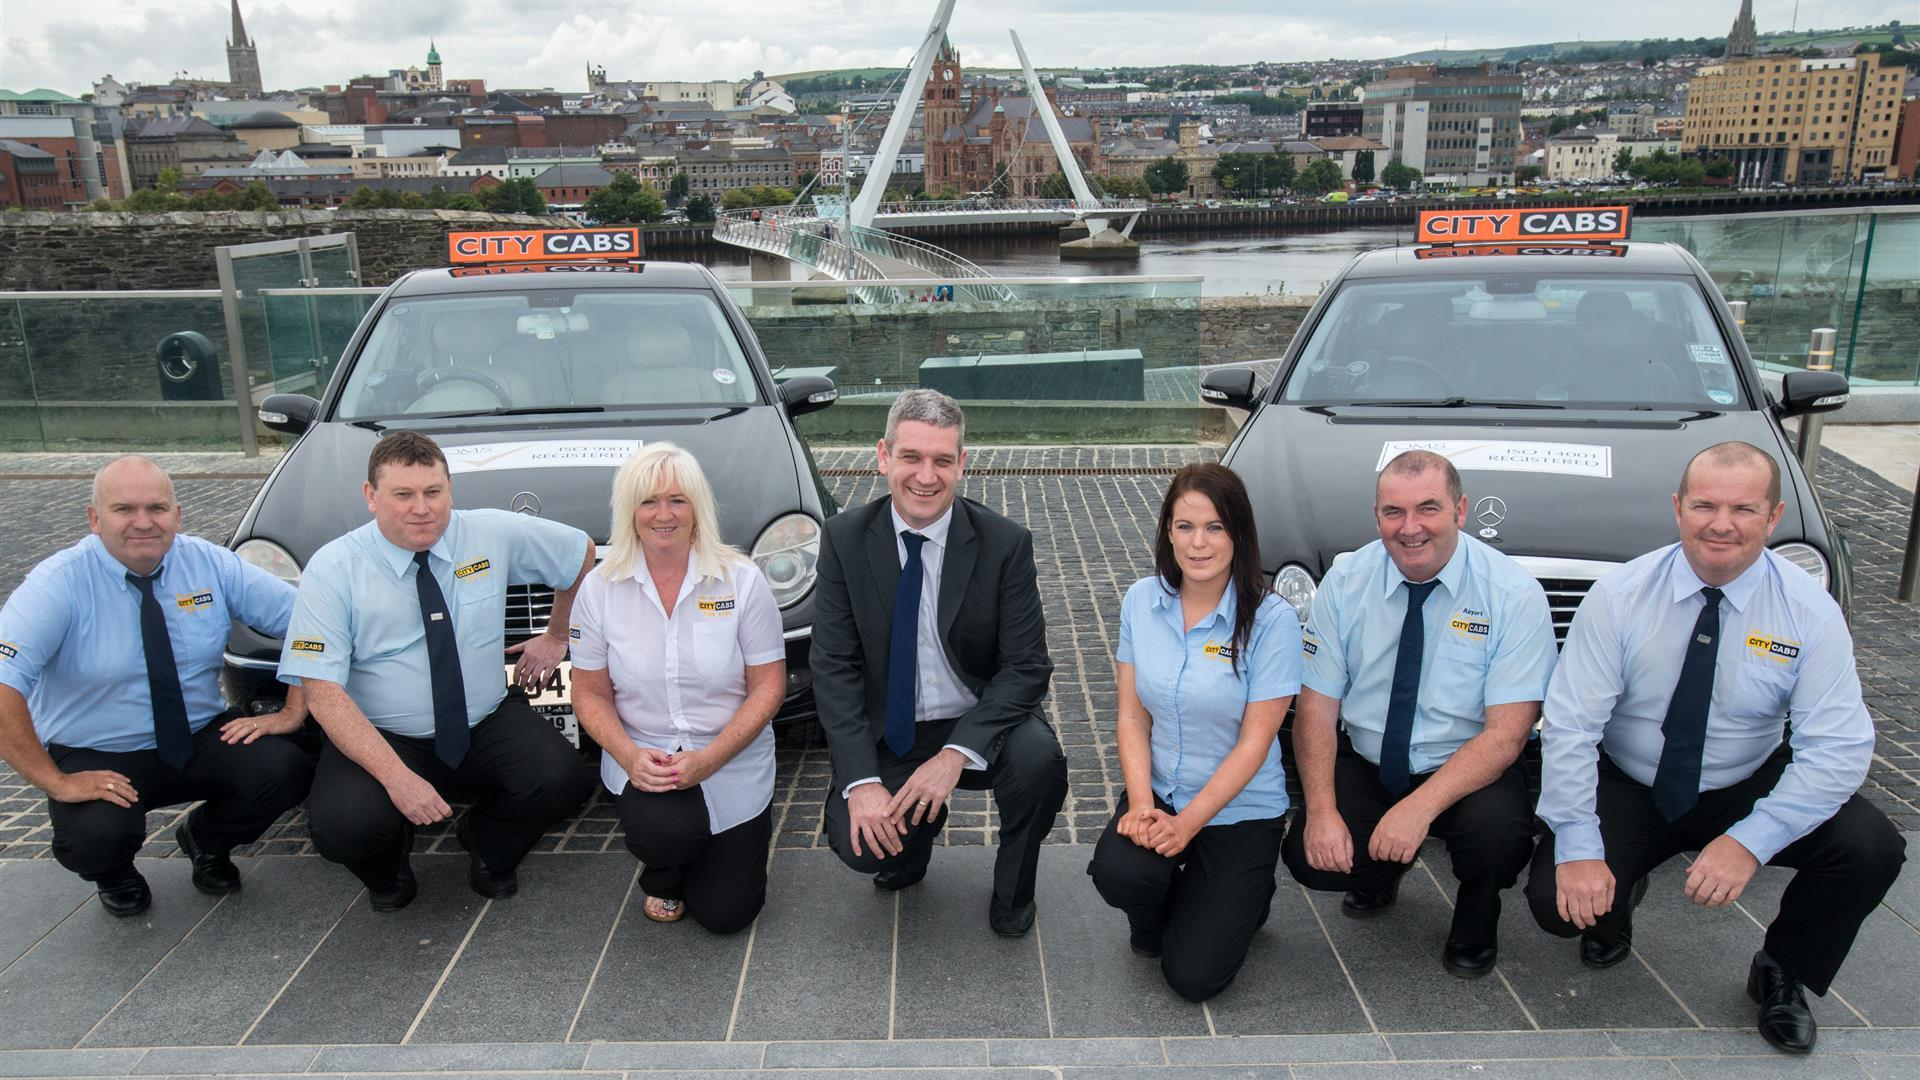 City Cabs Derry Derry Discover Northern Ireland